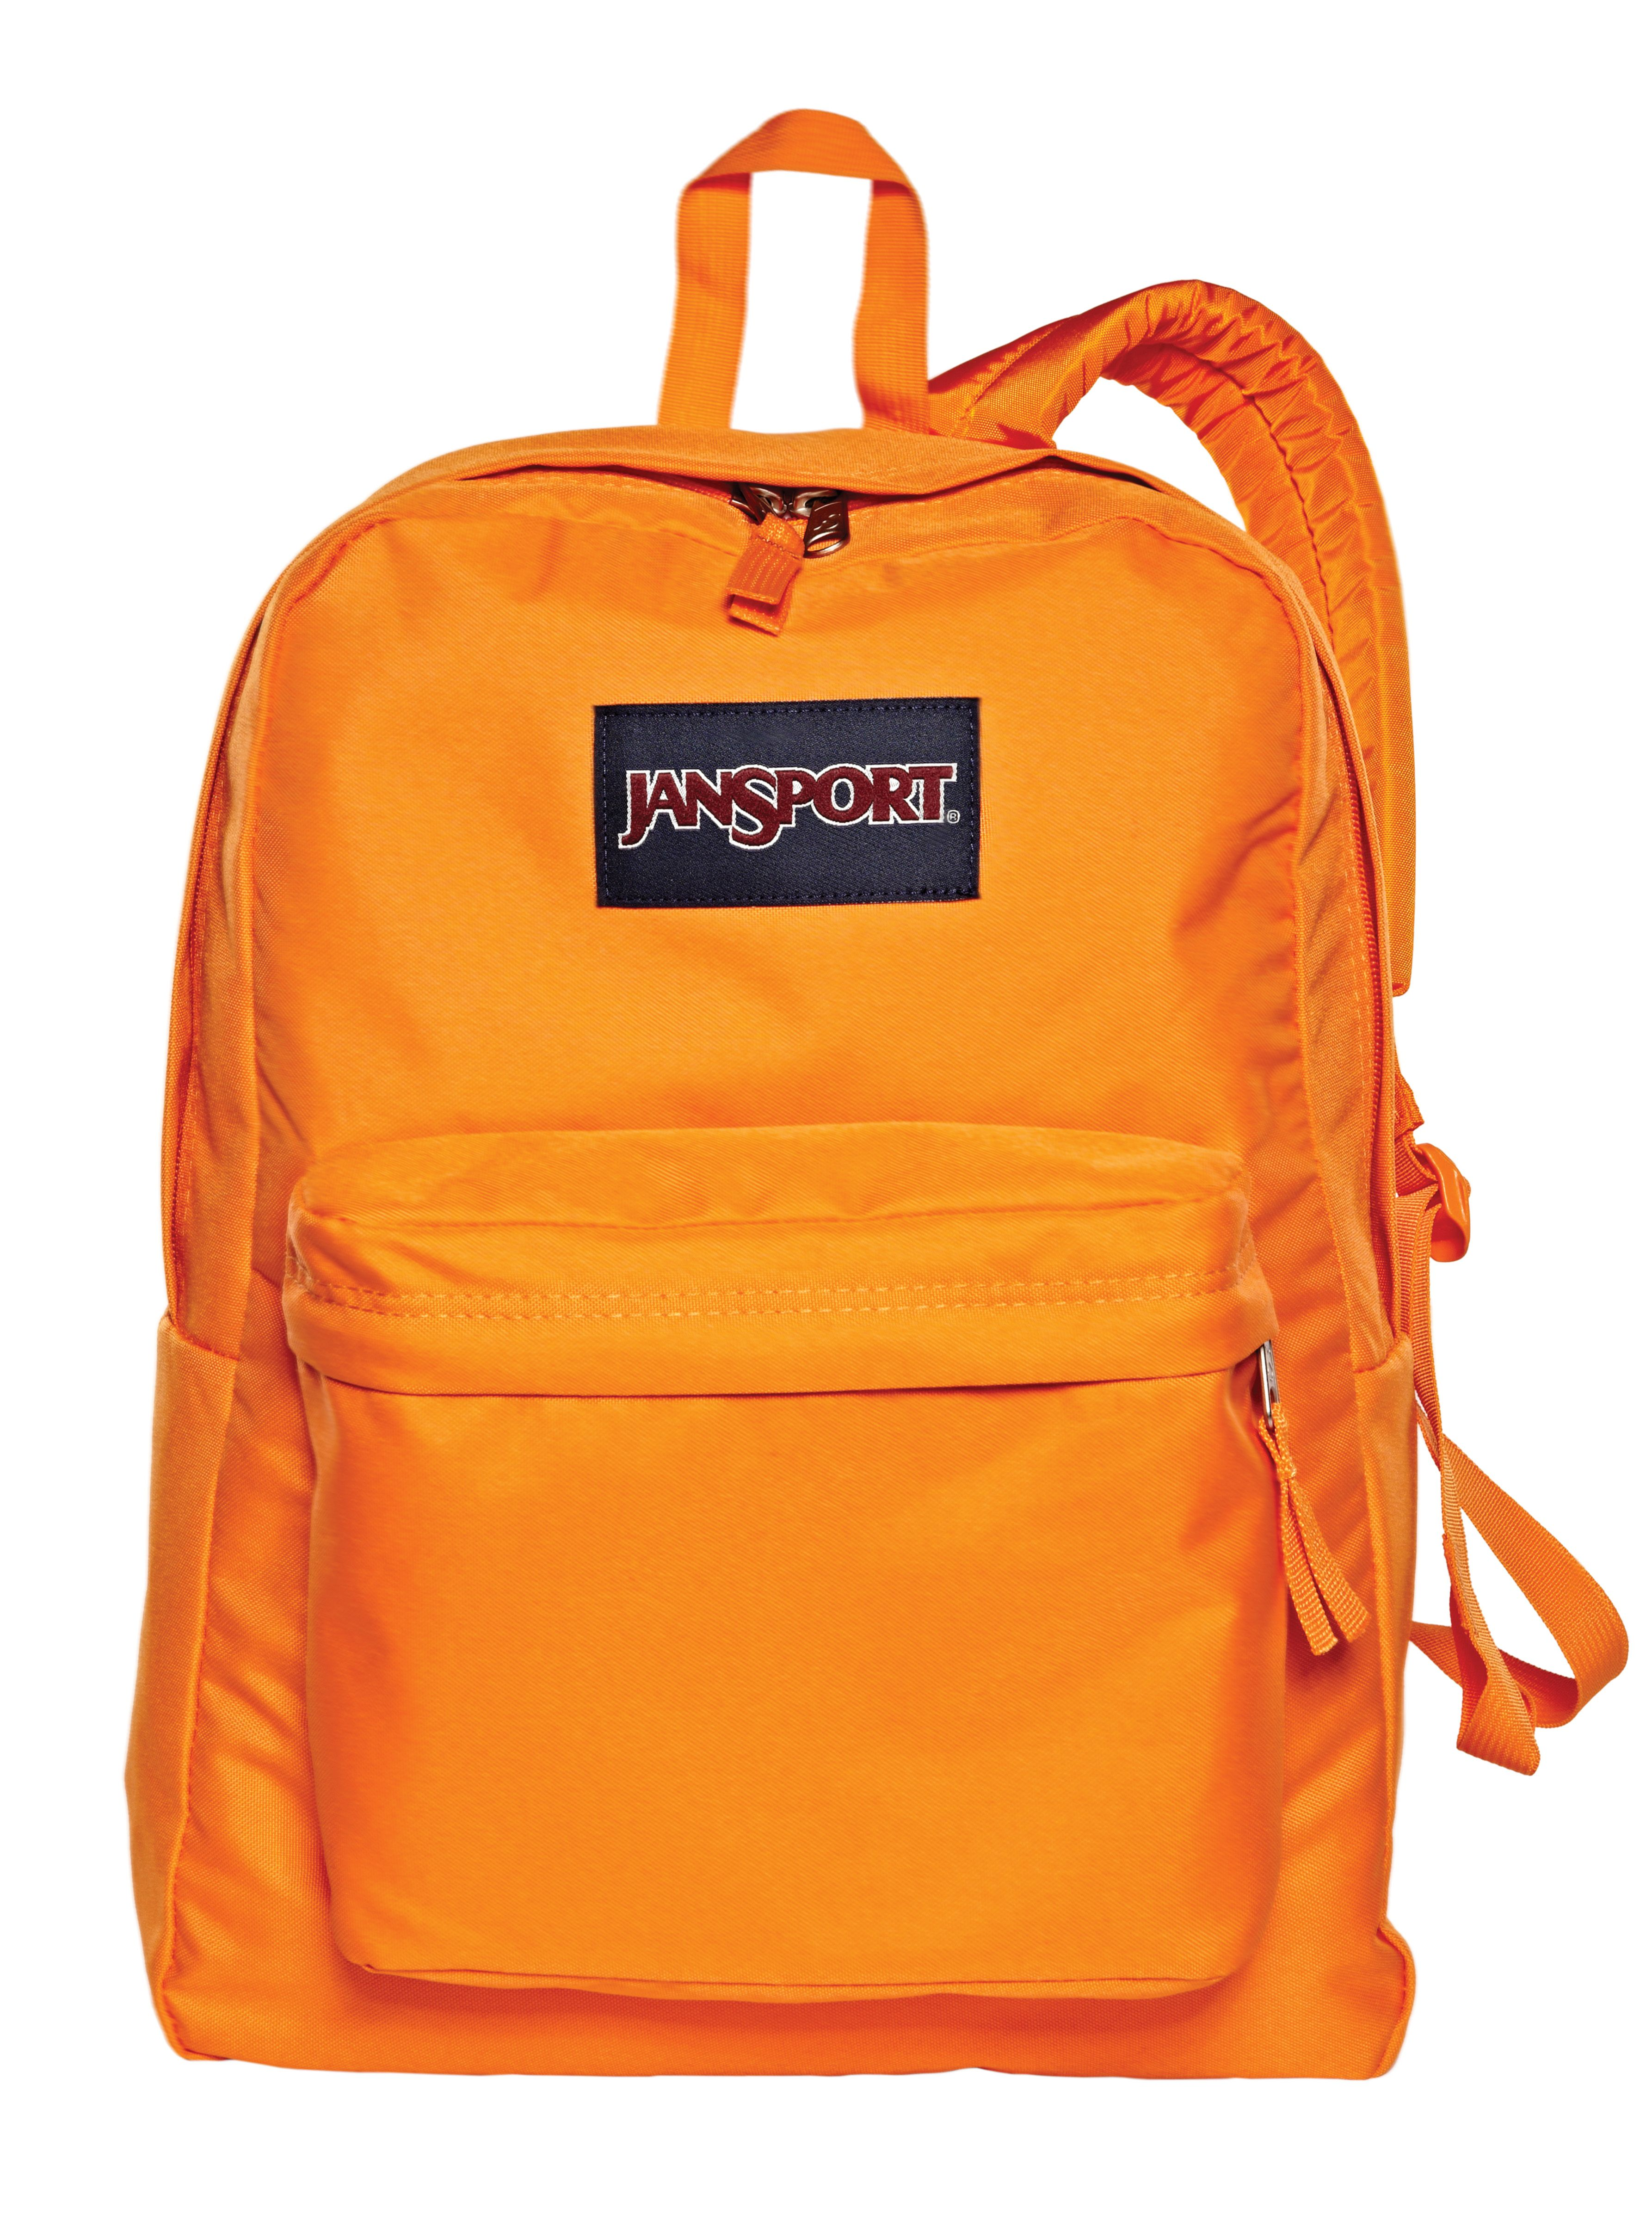 orange you glad school's back? -- orange @JanSport backpack | Kid ...